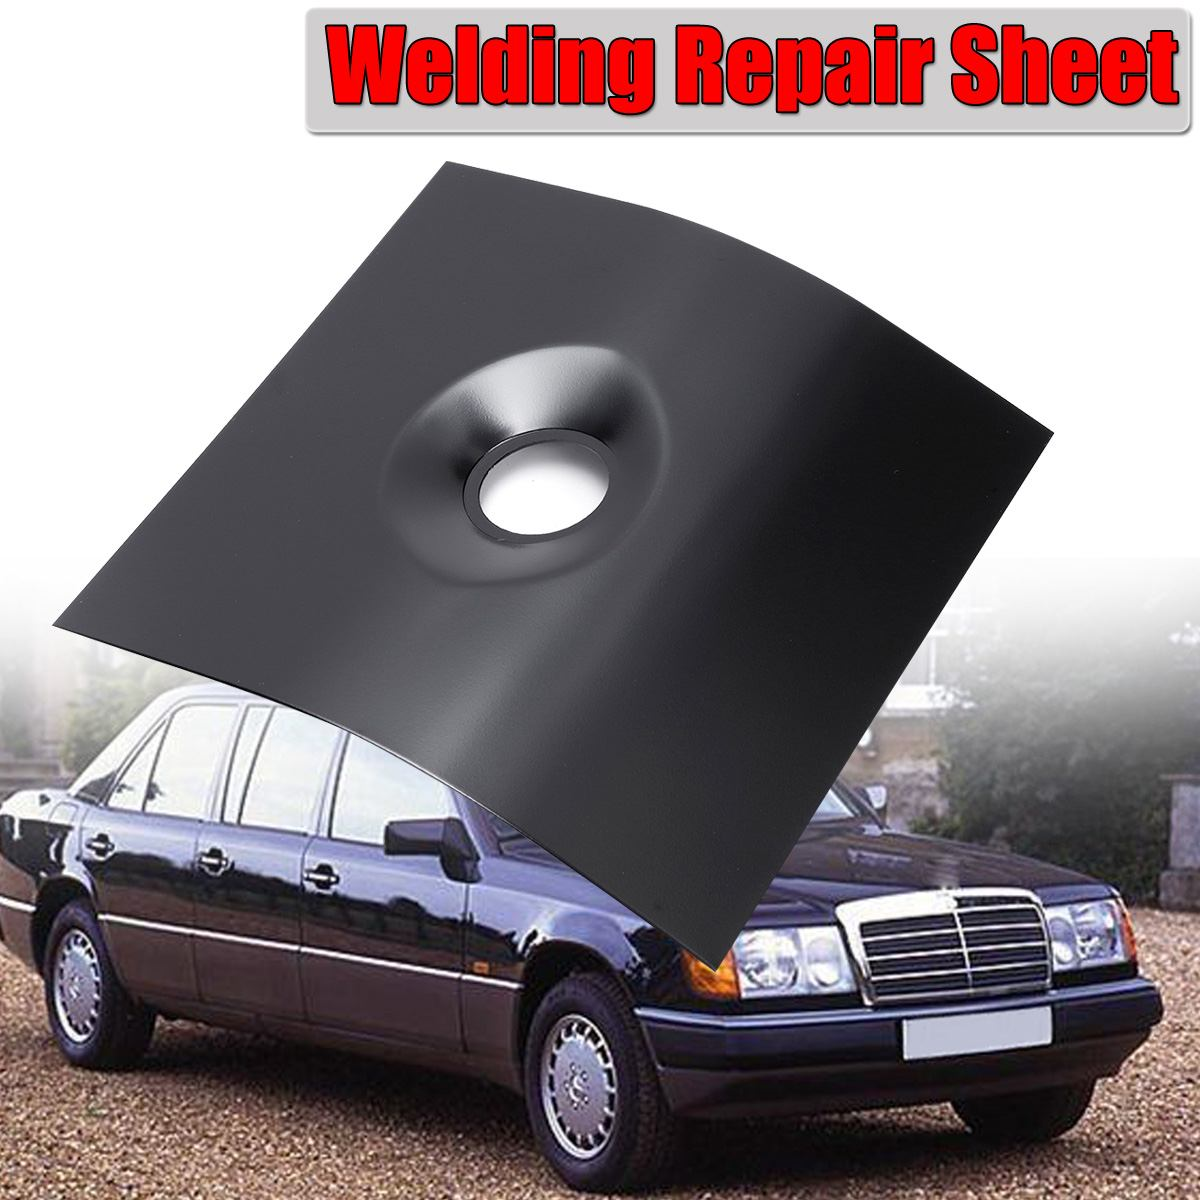 1x W124 Car Welding Repair Sheet Plate Panel For Mercedes Jack Lift For W124 S124 W140 W126 W220 VITO 638 Car Jack Repair Panel